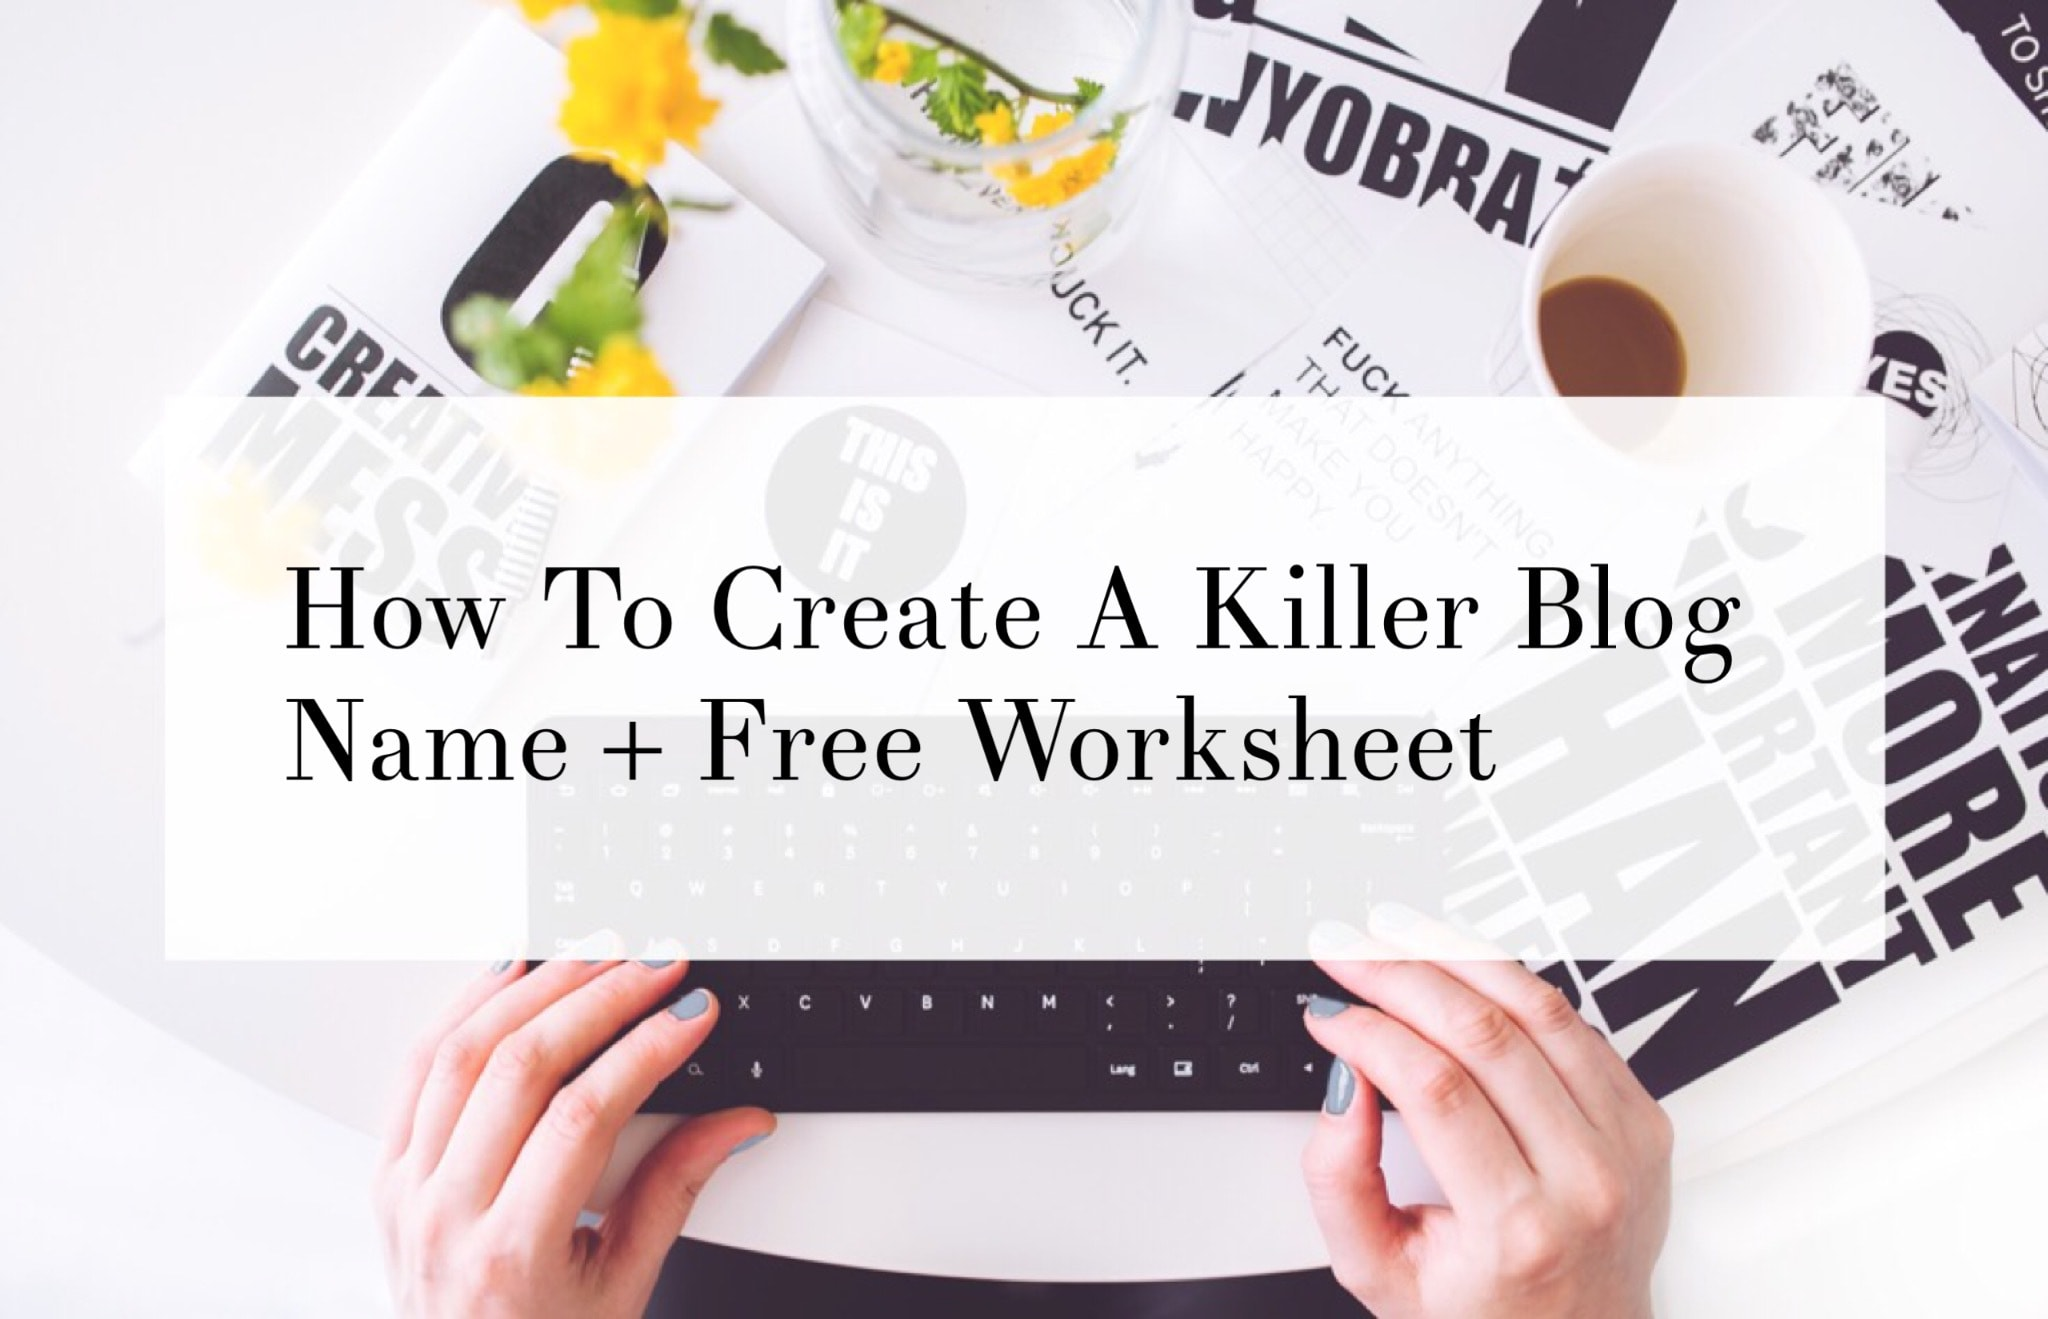 How to Create a Killer Blog Name + Free Worksheet! - Life on Waller